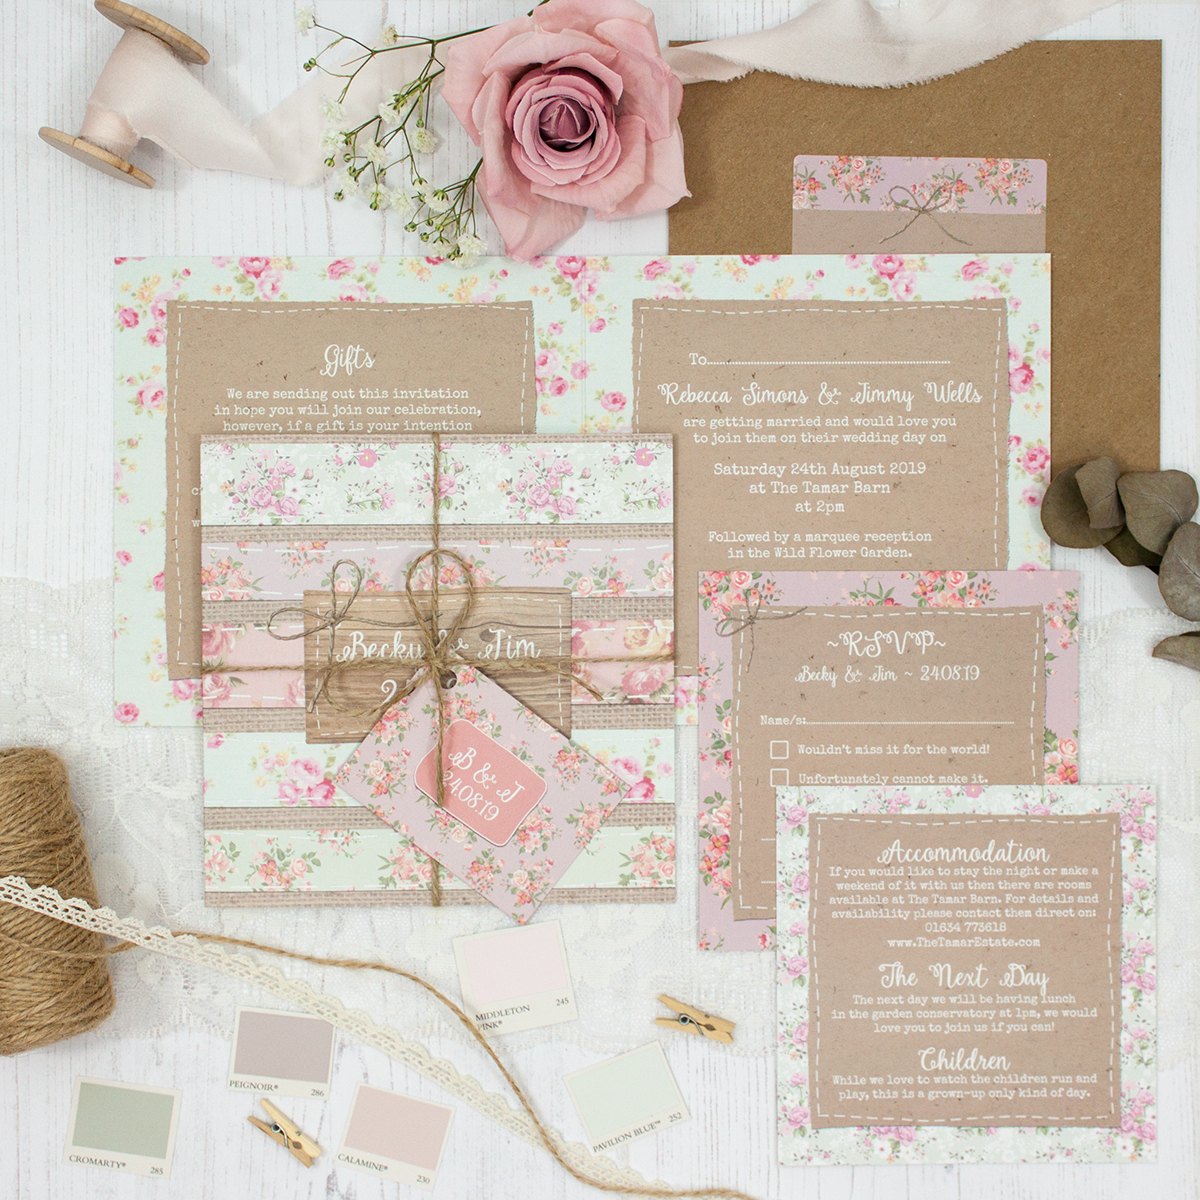 Floral Furrows Wedding showing invitation